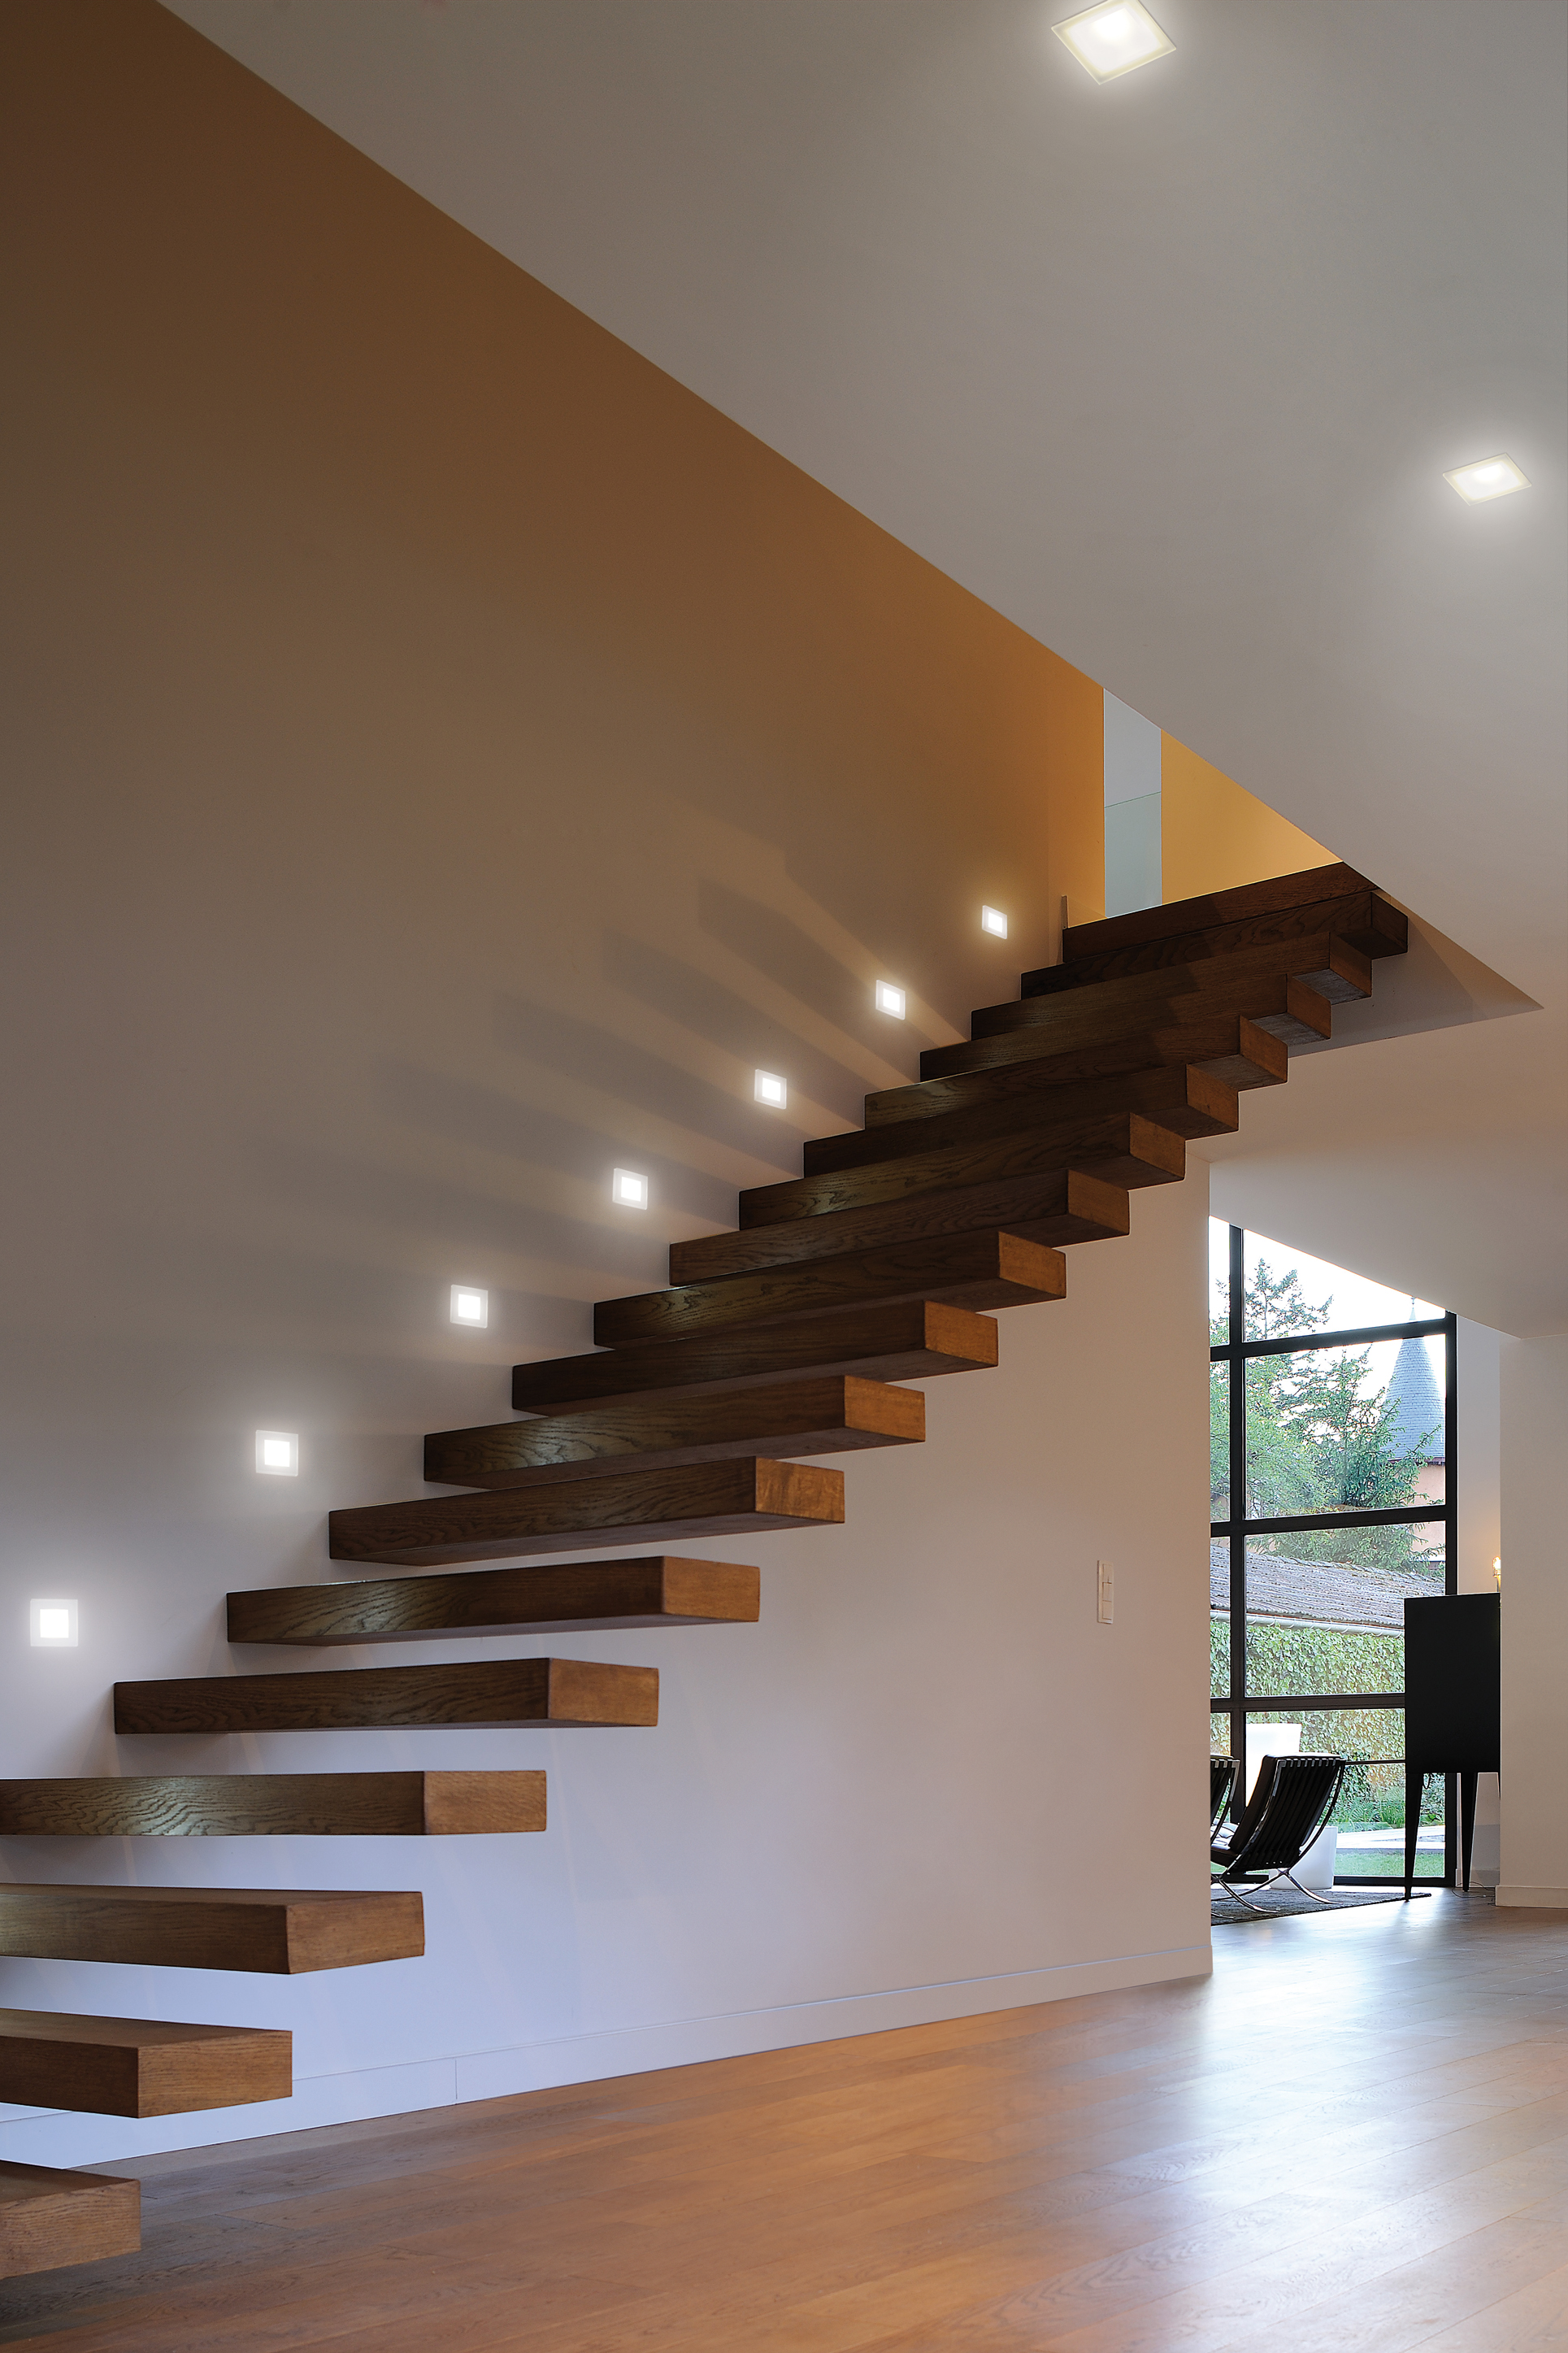 Spot da incasso a led luce e design for Illuminazione a led